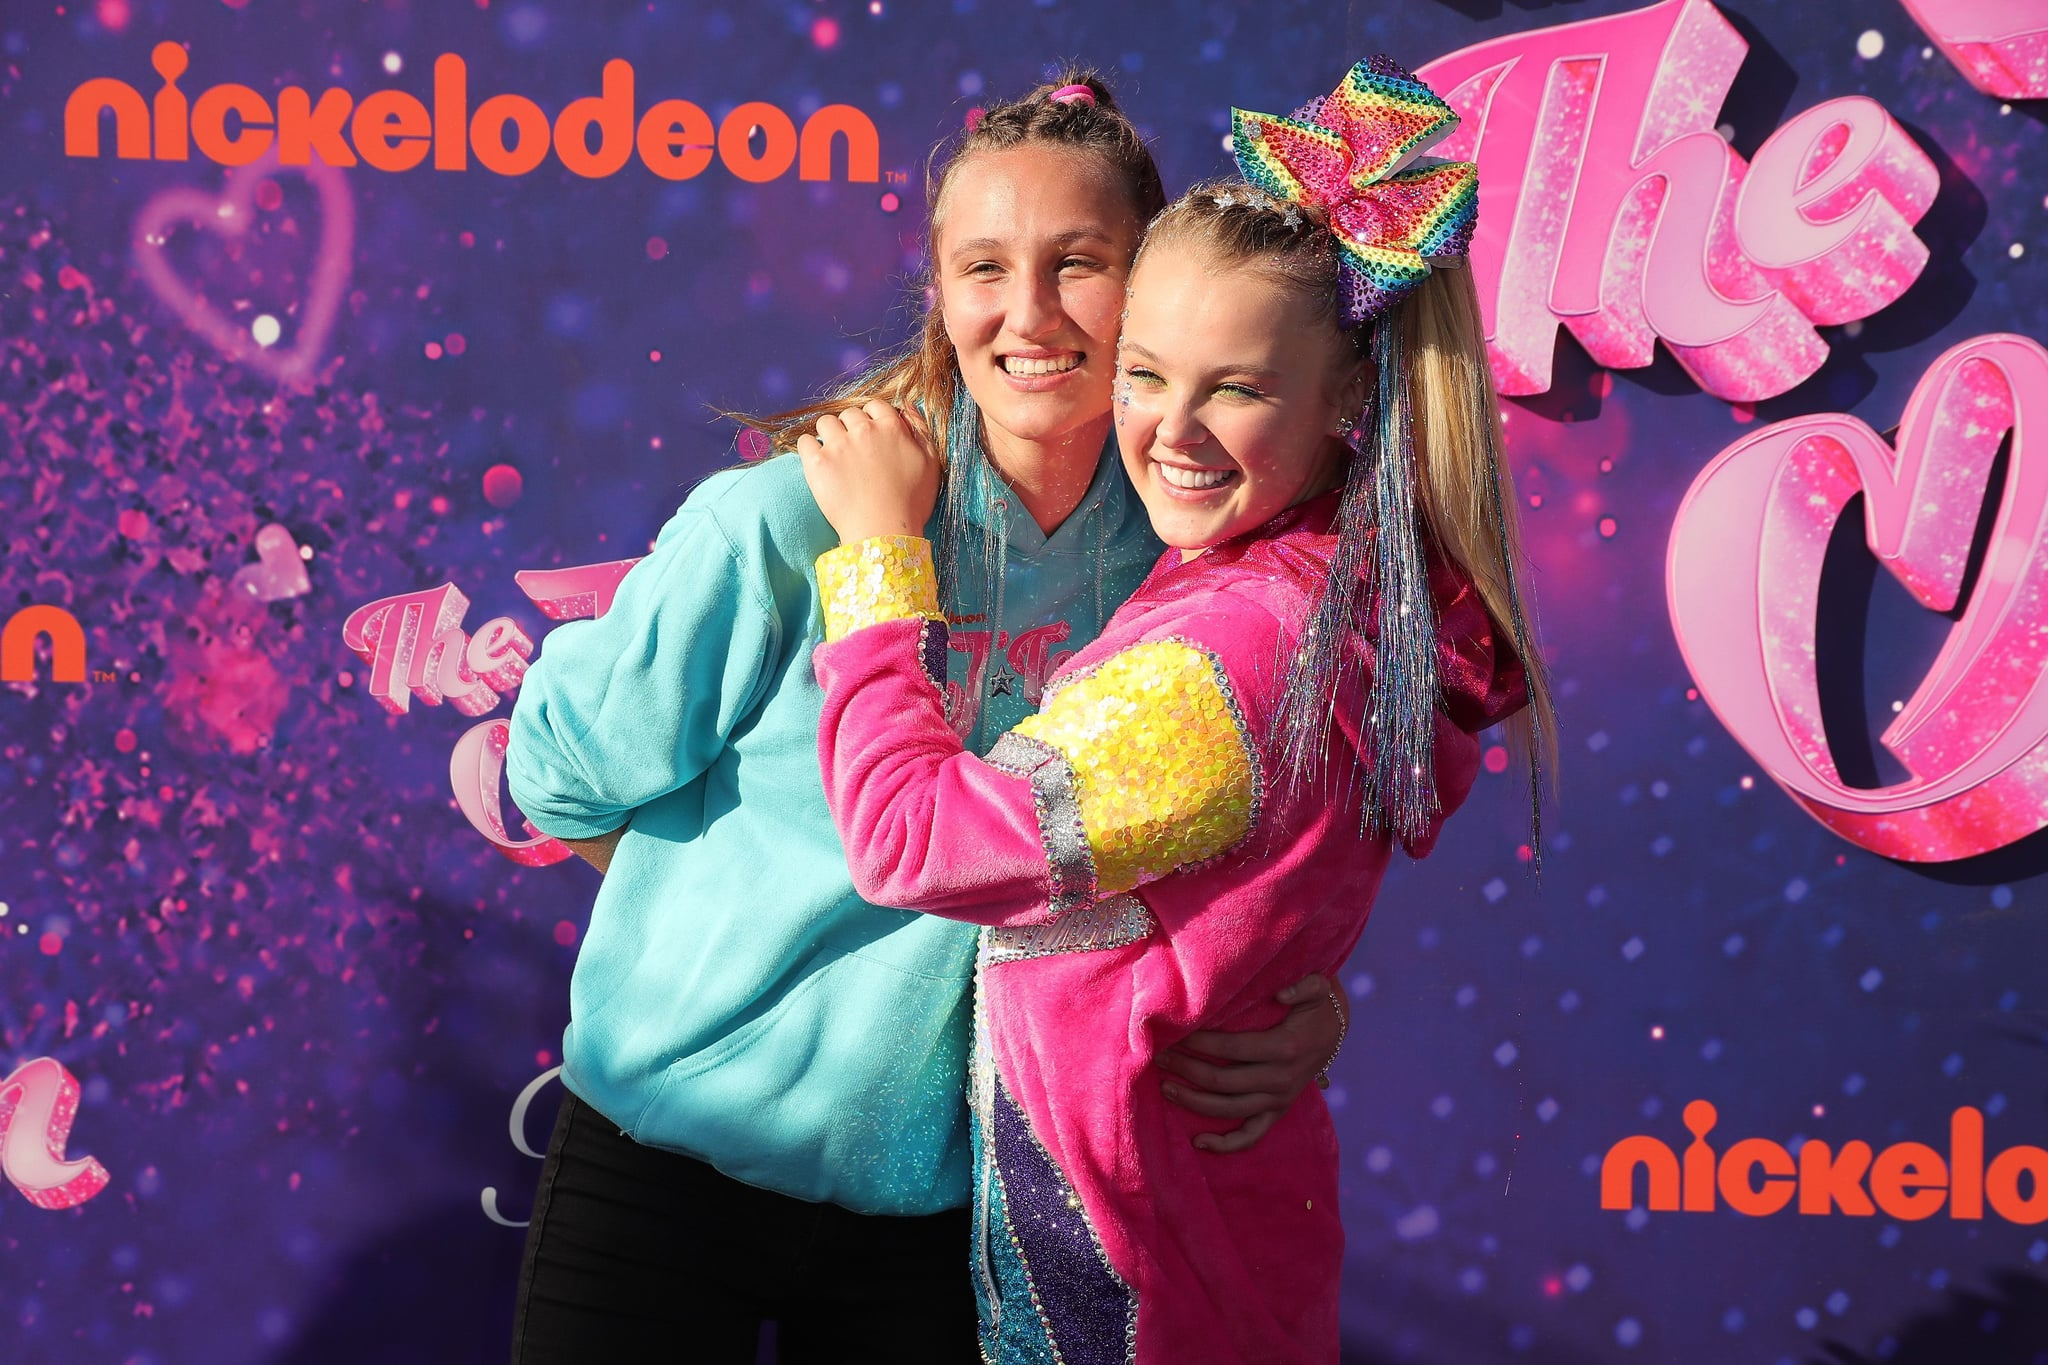 PASADENA, CALIFORNIA - SEPTEMBER 03: (L-R) Kylie Prew and JoJo Siwa attend a drive-in screening and performance for the Paramount+ original movie